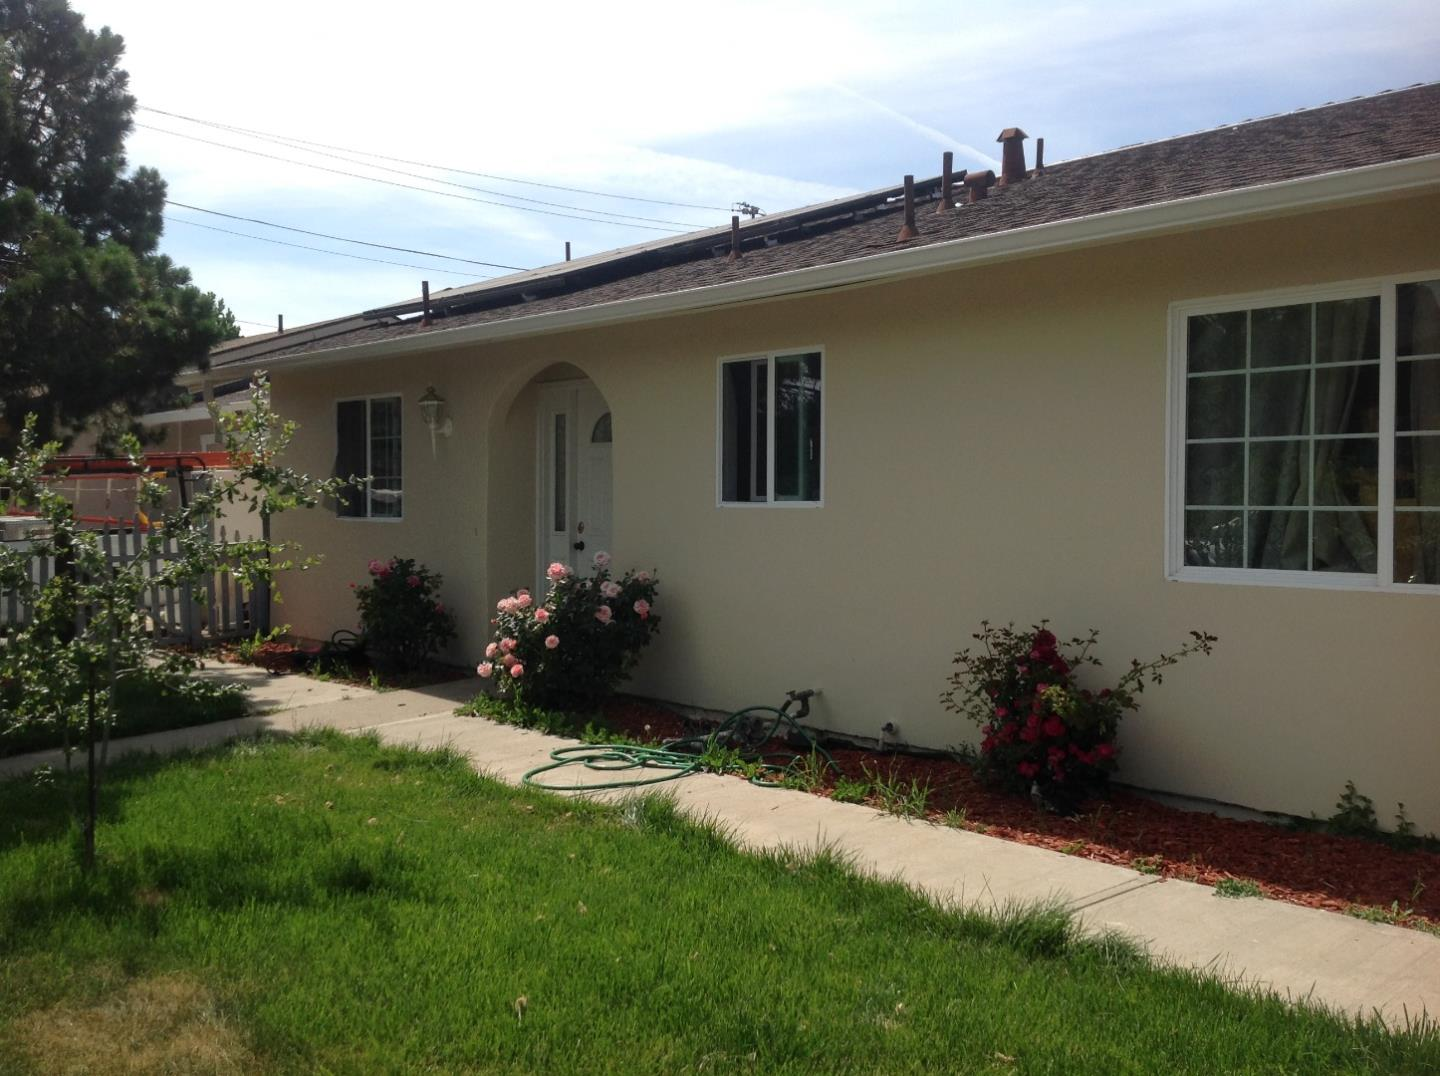 Additional photo for property listing at 435 I O O F Avenue  Gilroy, California 95020 United States